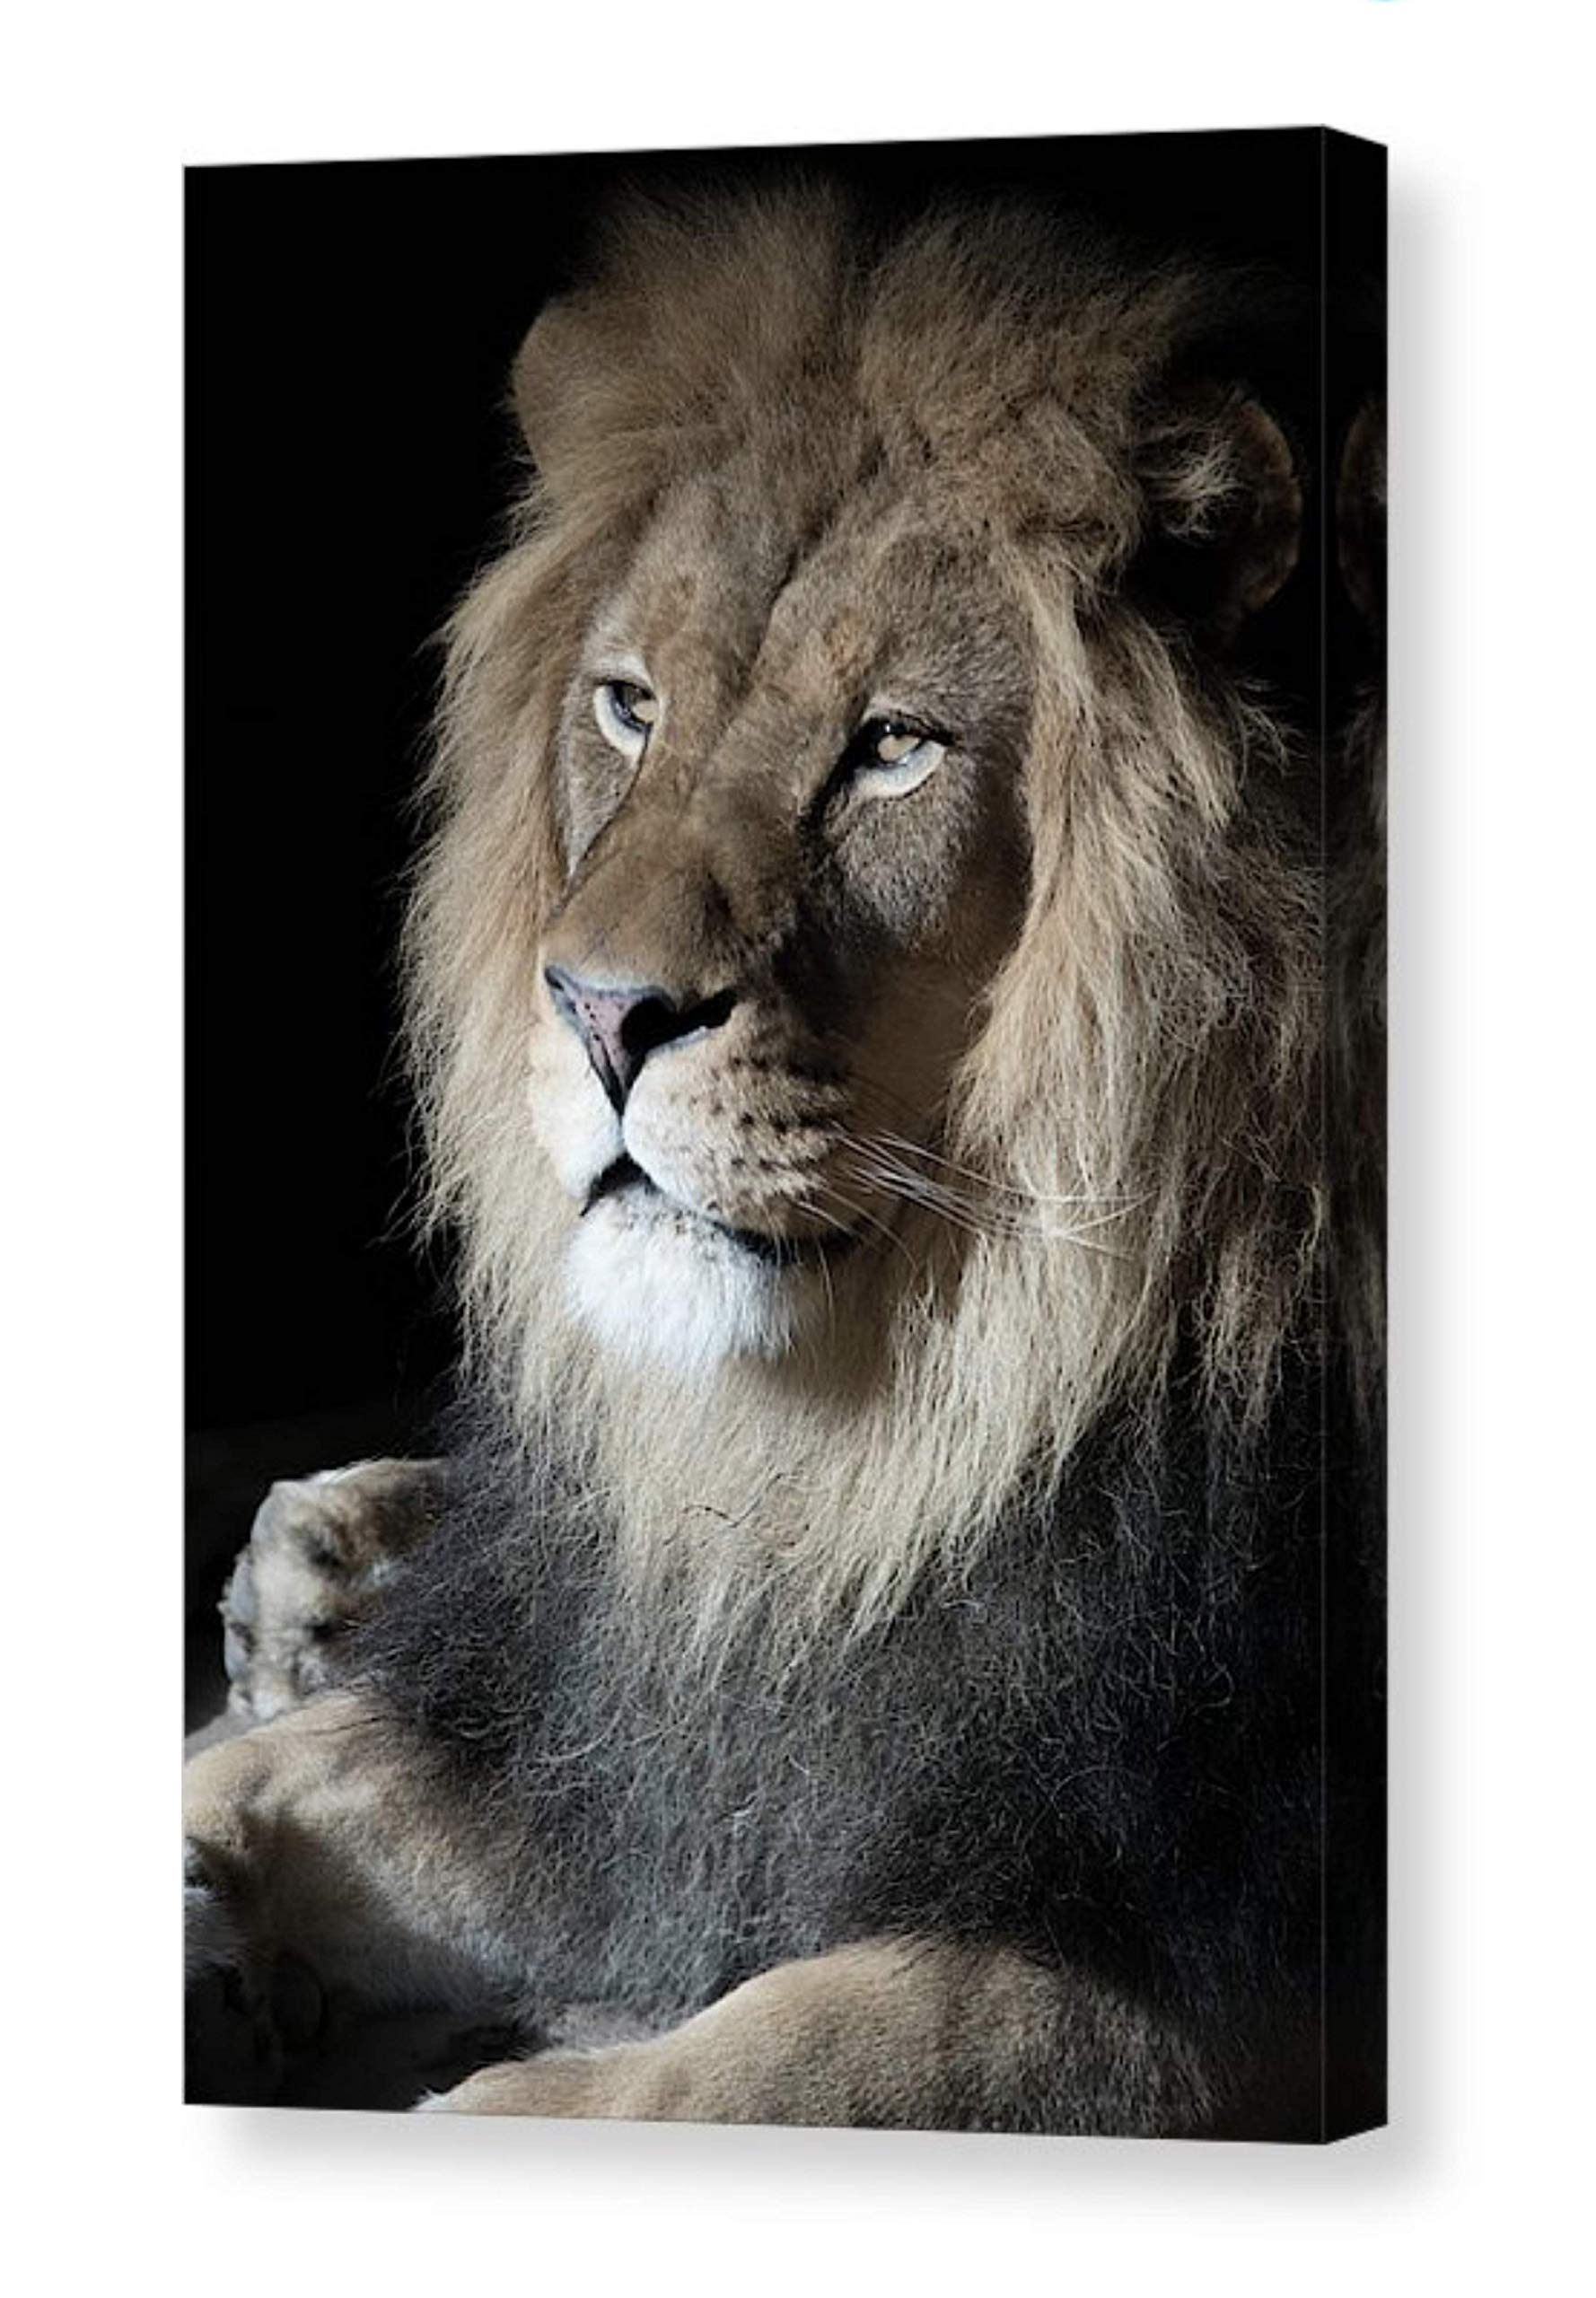 Photographic Portrait of Male African Lion Printed on CANVAS Ready to Hang Nature Photo Tawny Brown Tan Black Wall Art for Home or Office Big Cat Photography 8x12 12x18 16x24 20x30